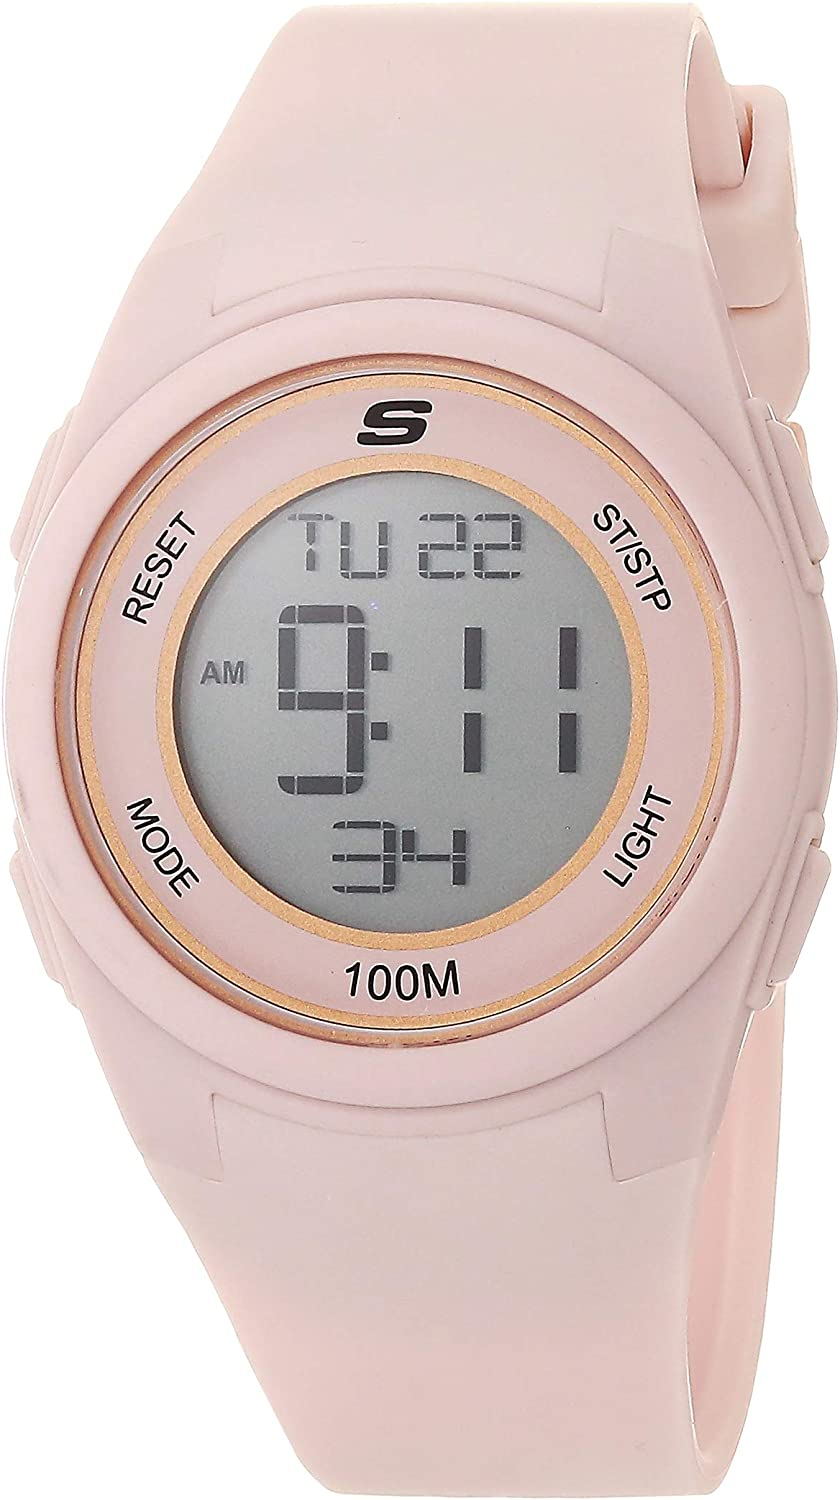 Skechers Women's Quartz Max 64% OFF Metal and Watch Silicone Import Digital Sports